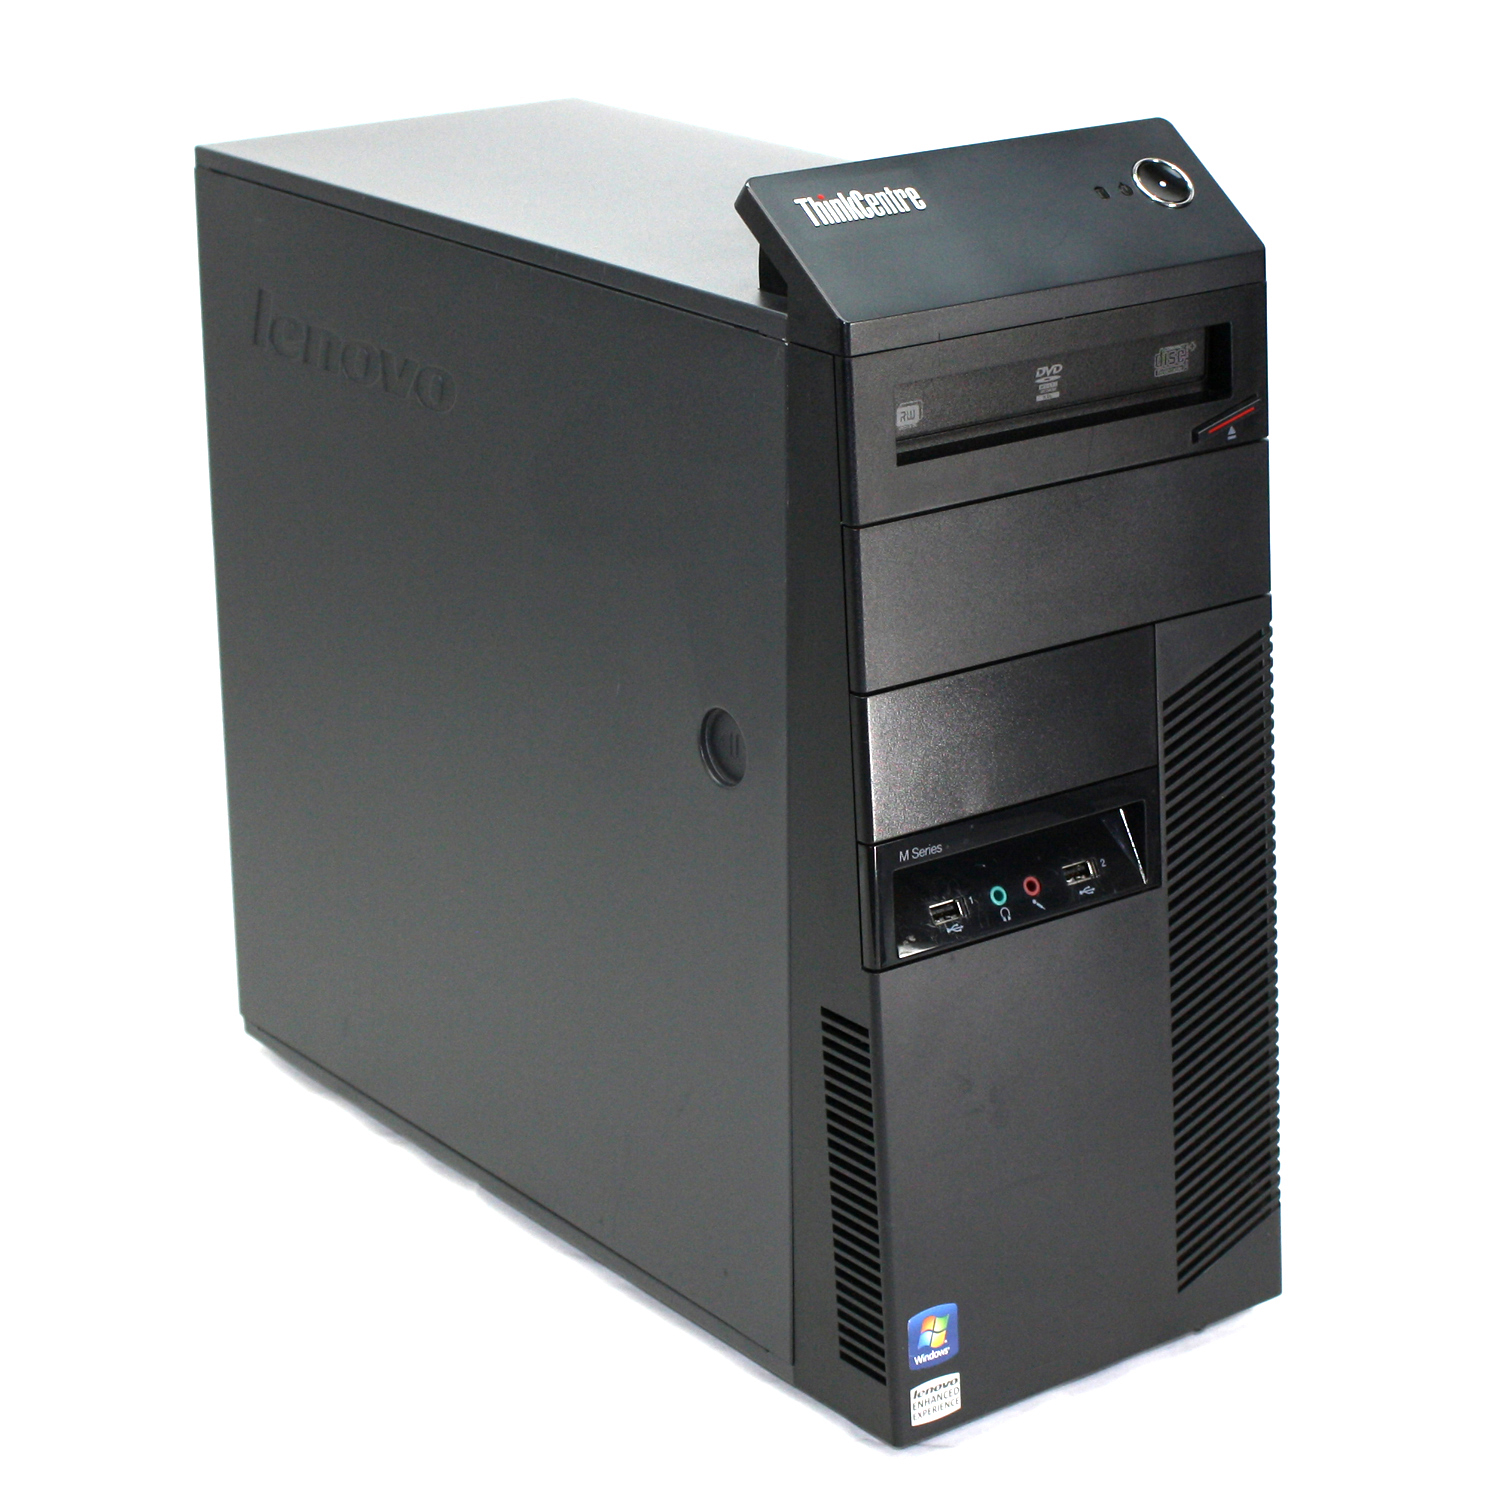 Lenovo ThinkCentre M90 Mini Tower Refurbished - Intel Quad Core i7 up to 3.6GHz, 16GB RAM, 2TB HDD, Windows 10 Pro (Monitor Not Included)